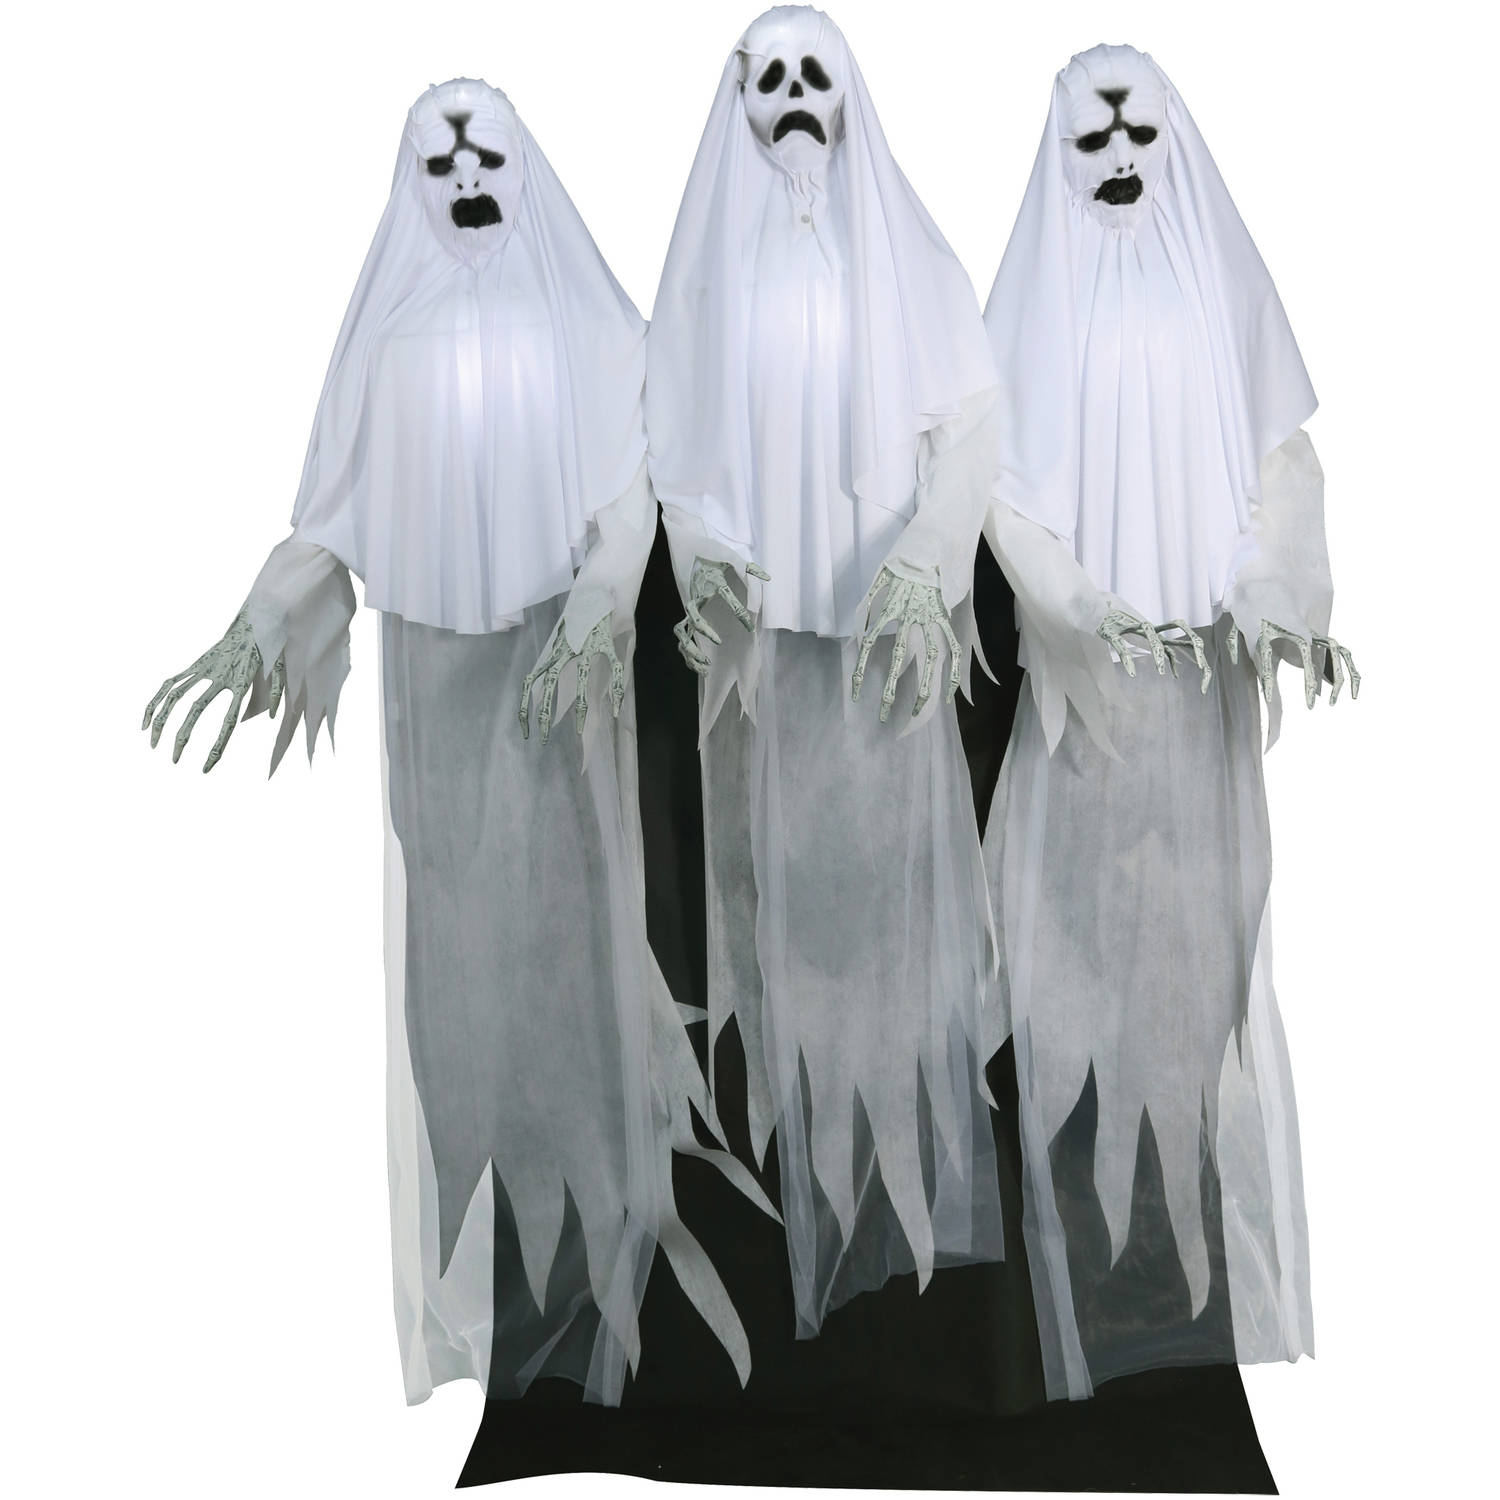 haunting ghost trio animated halloween decoration walmartcom - Animated Halloween Decorations